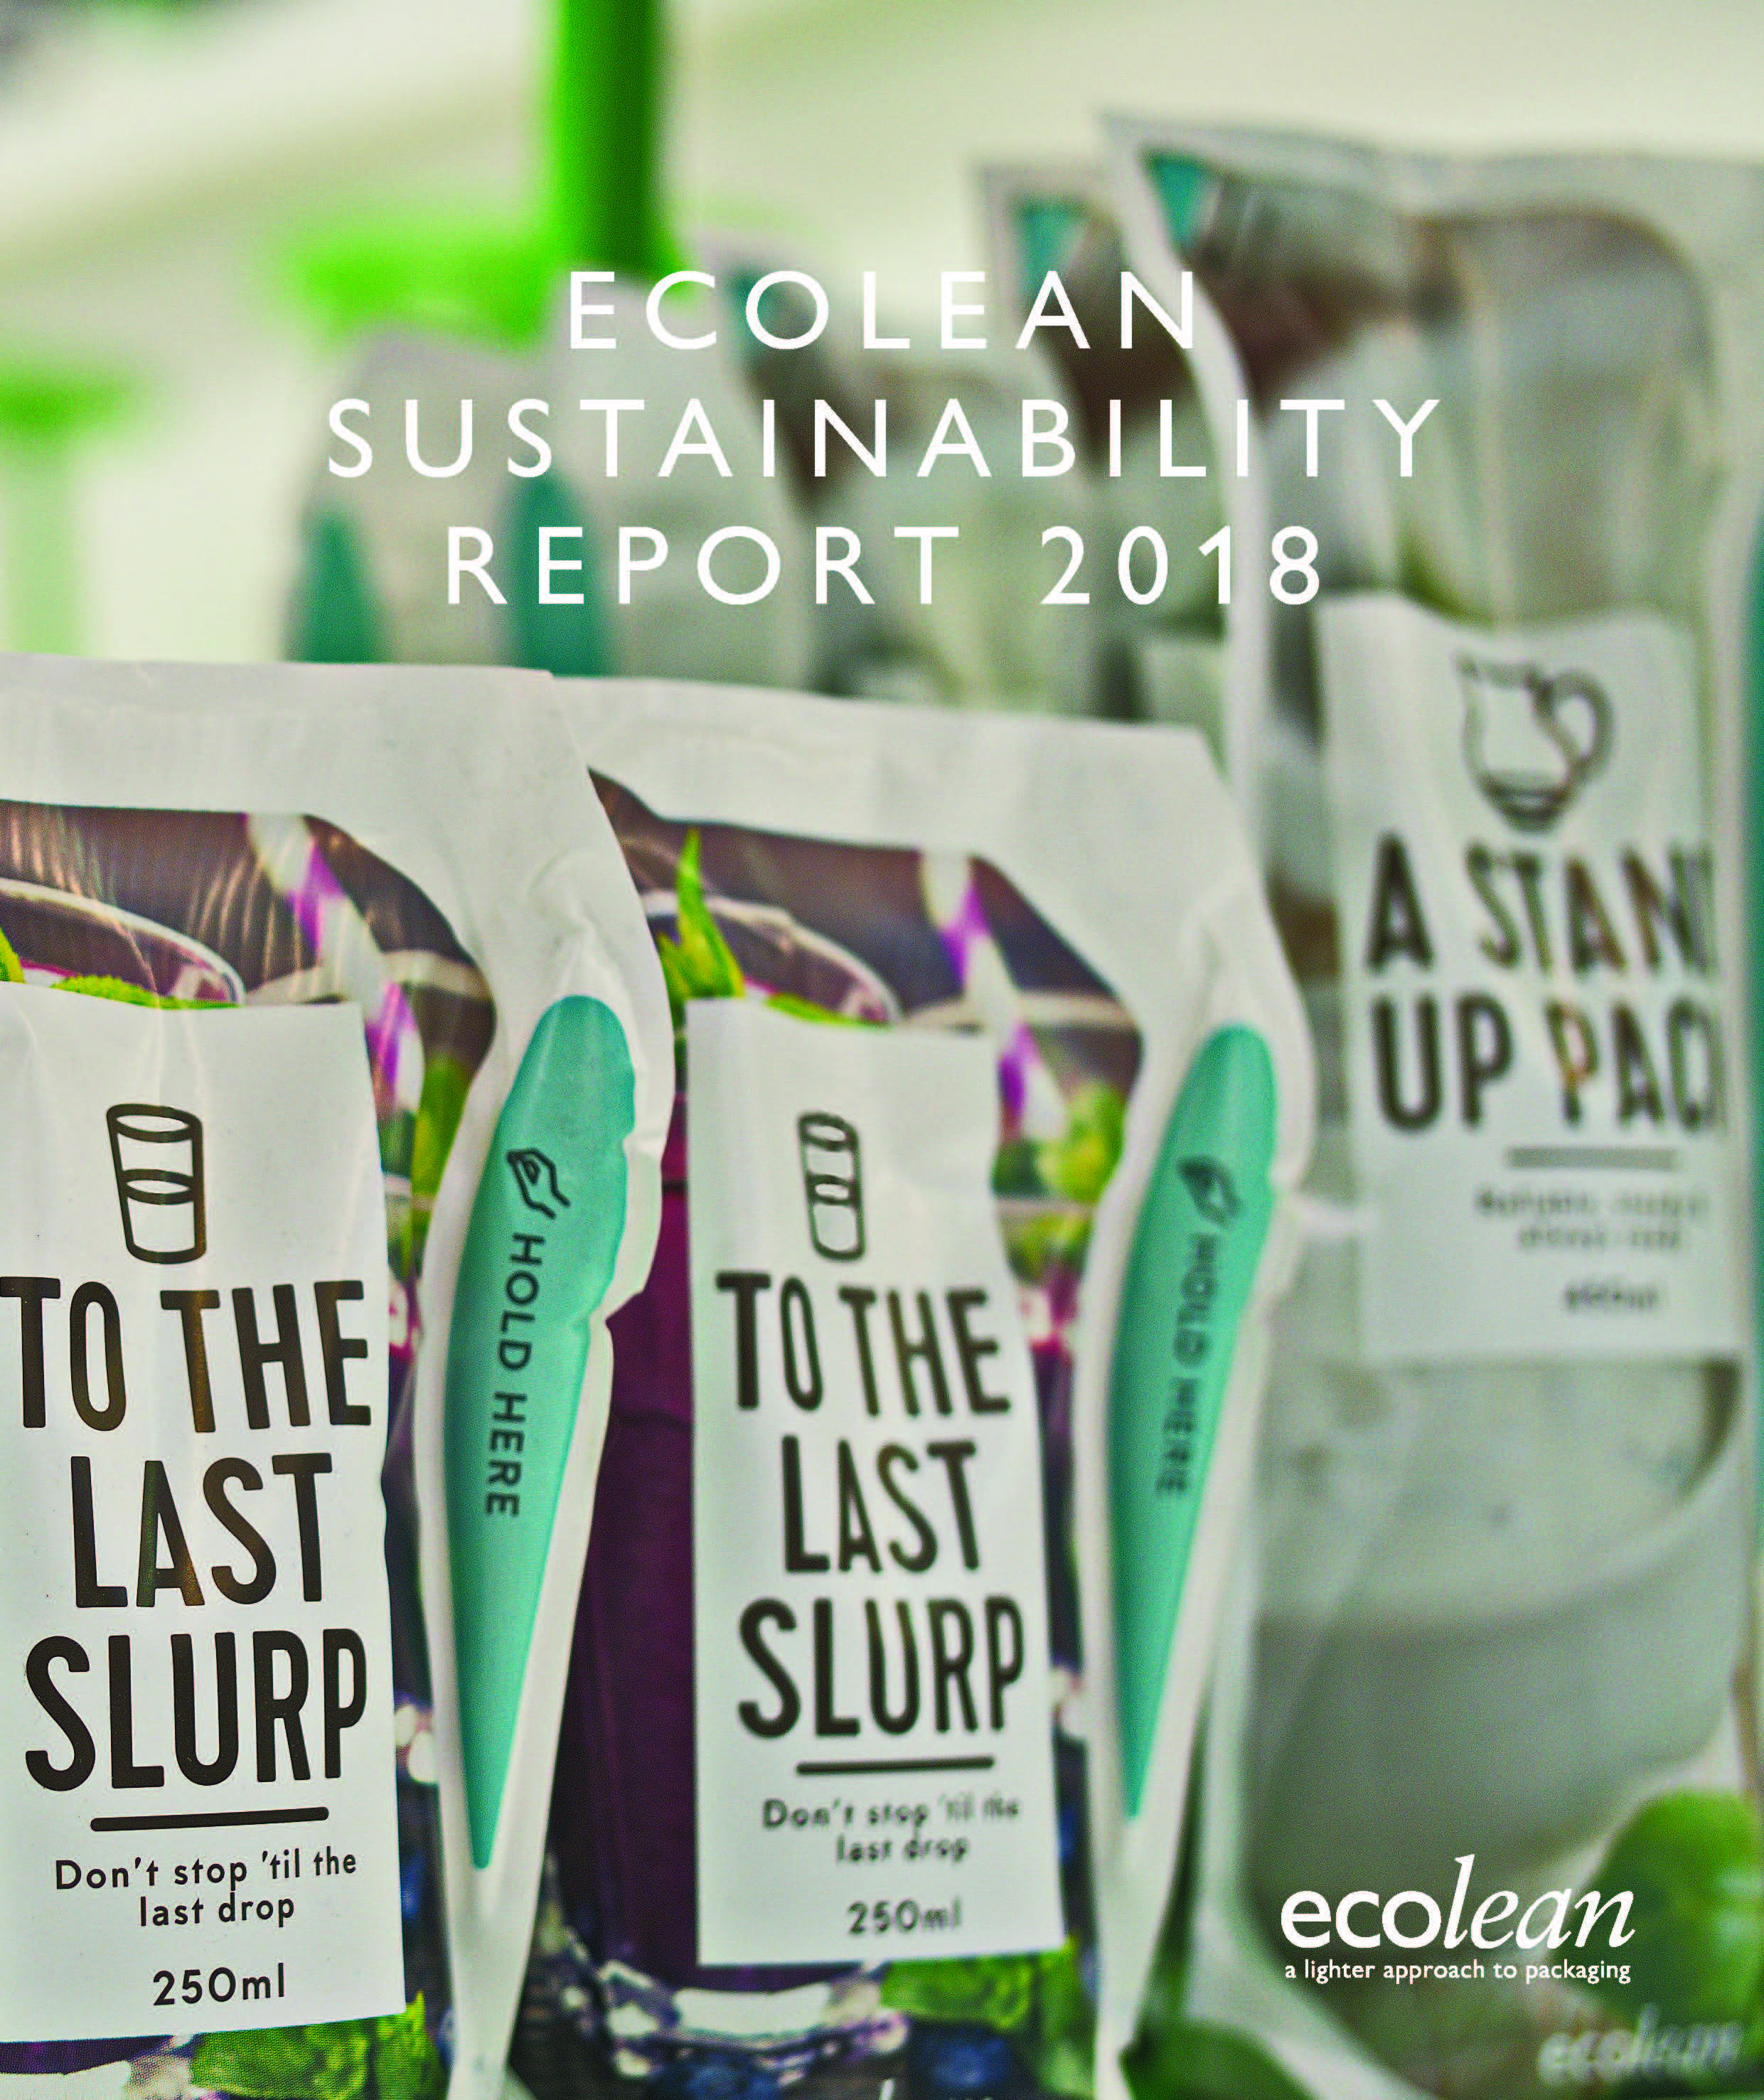 Ecolean takes leadership in sustainable packaging